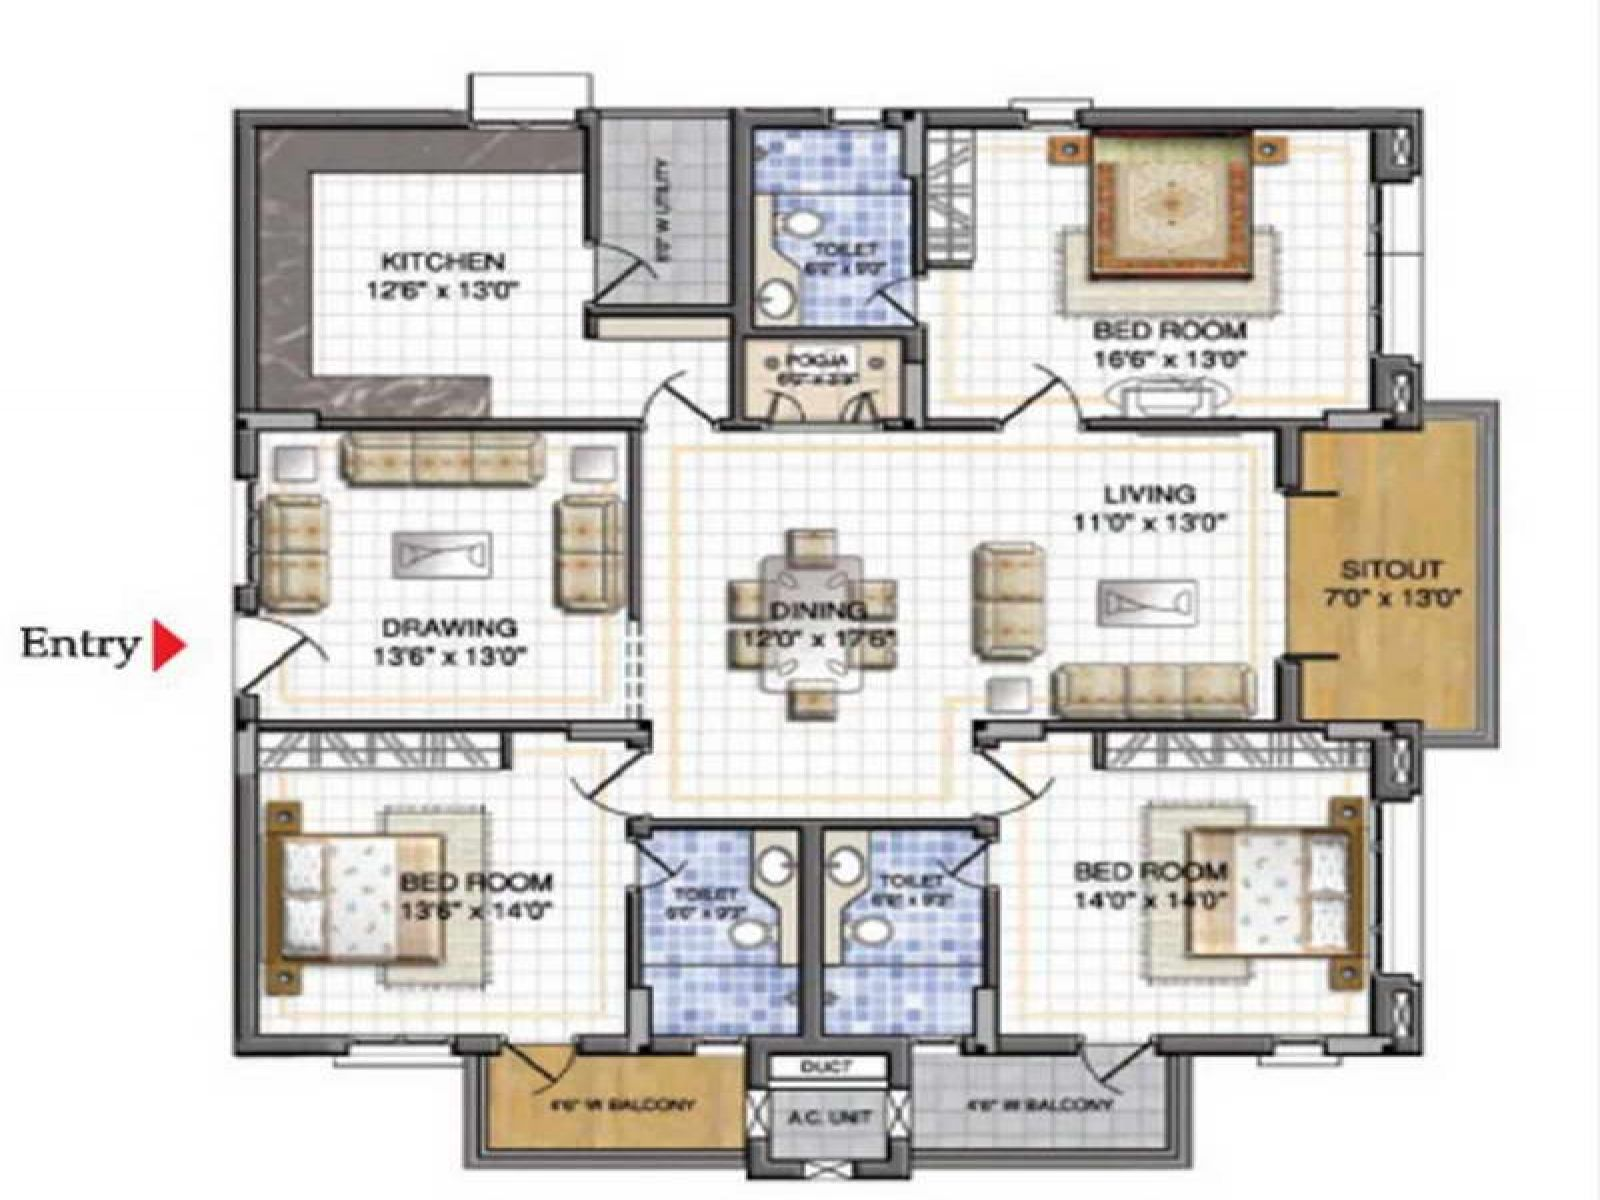 Sweet home 3d plans google search house designs for Create blueprints online free